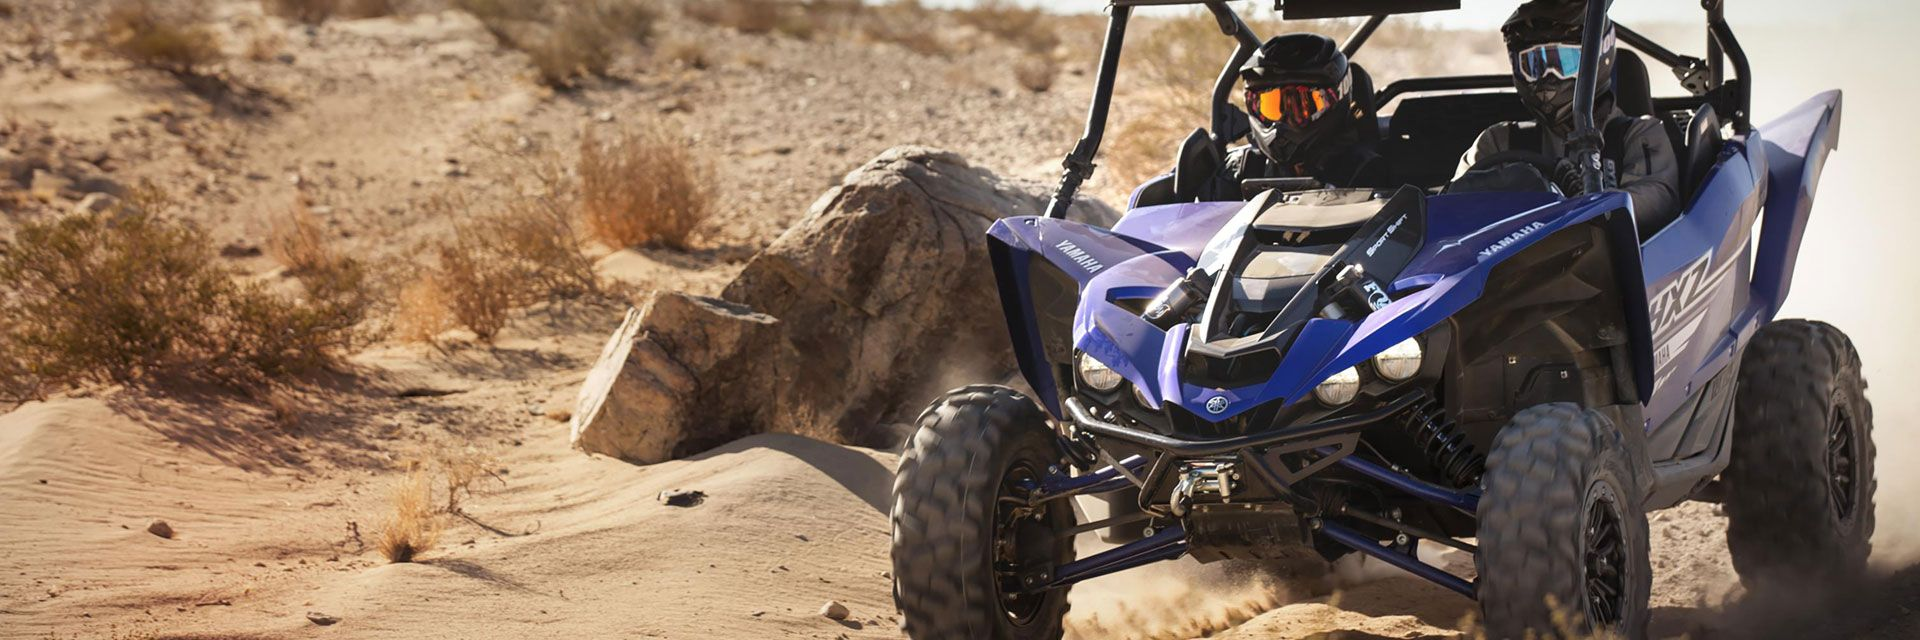 Shop Yamaha at K&N Powersports